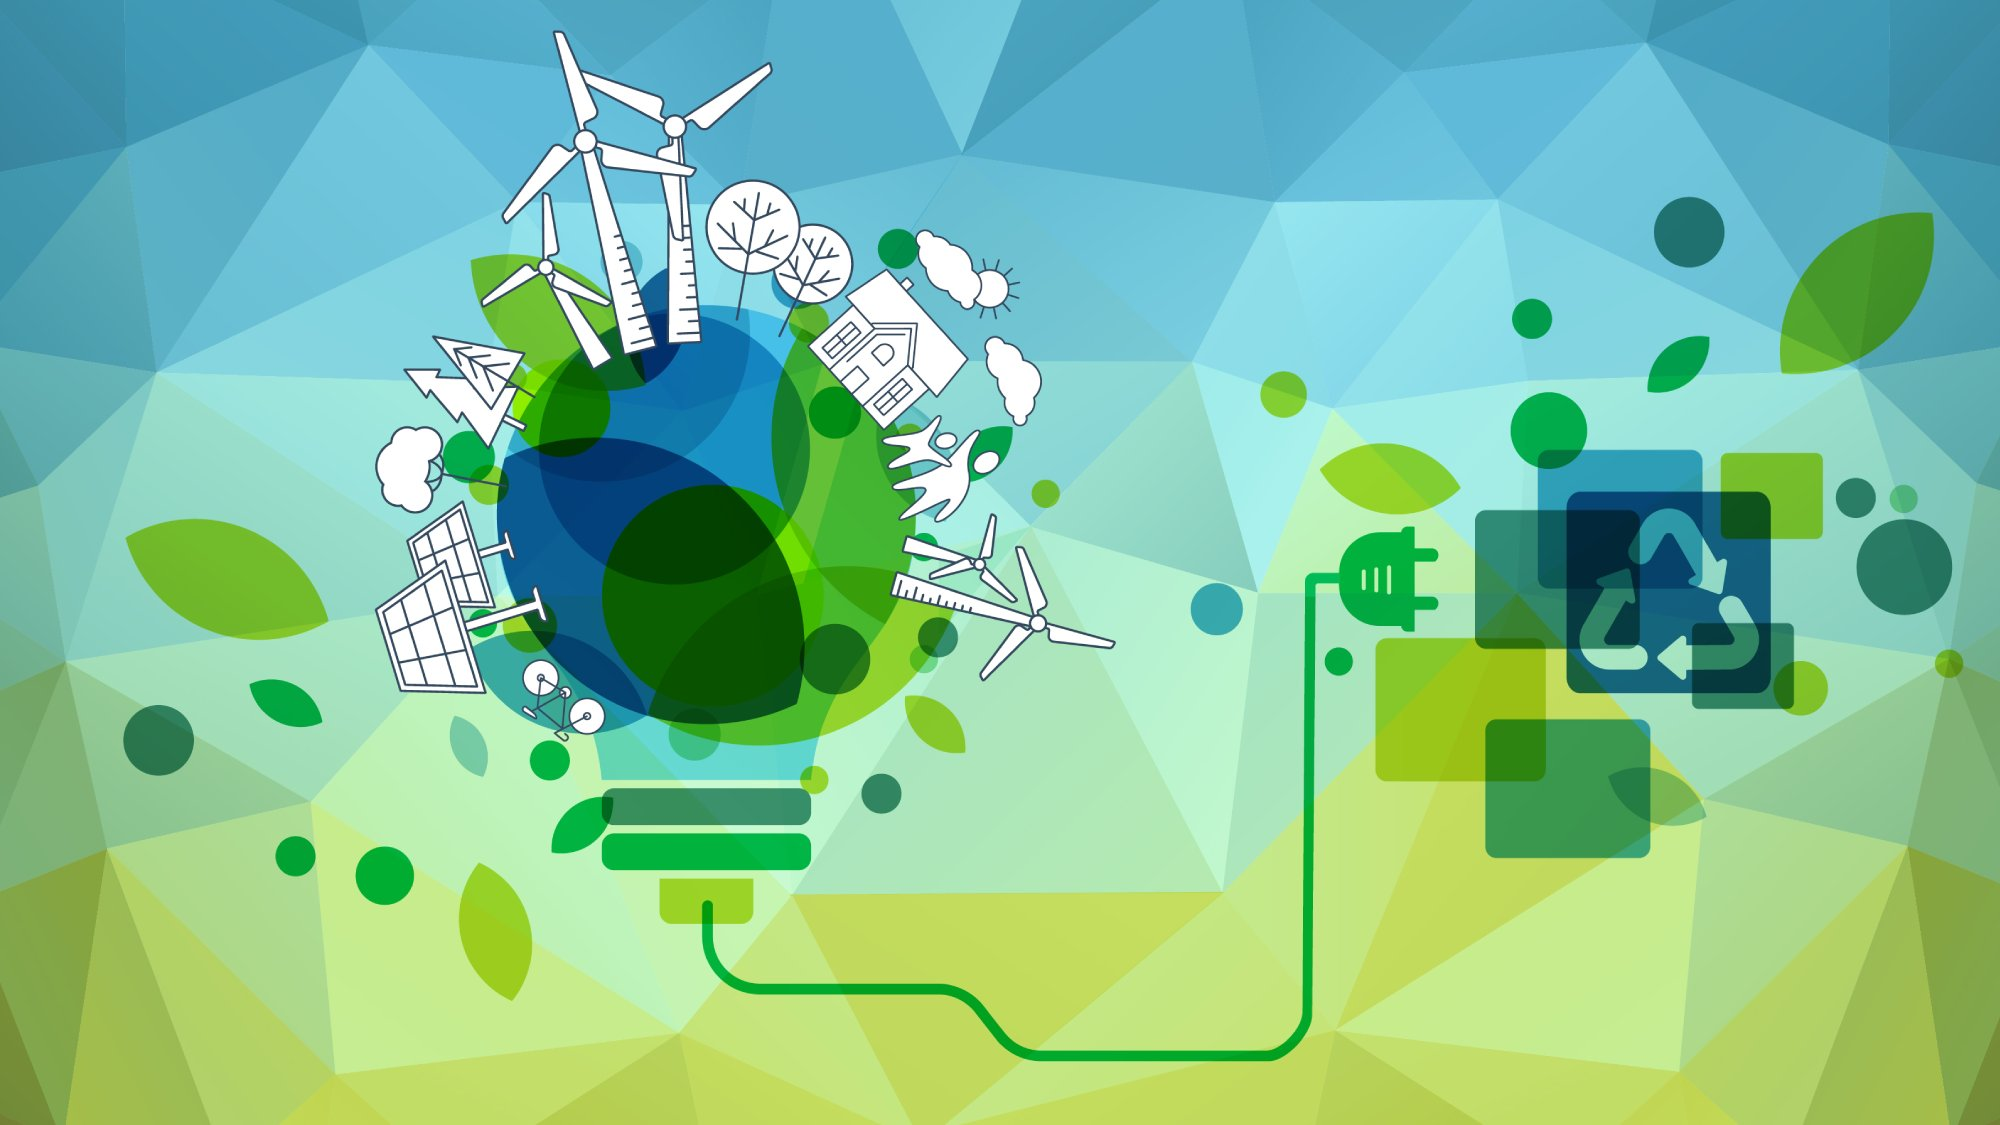 illustration of cleantech environment